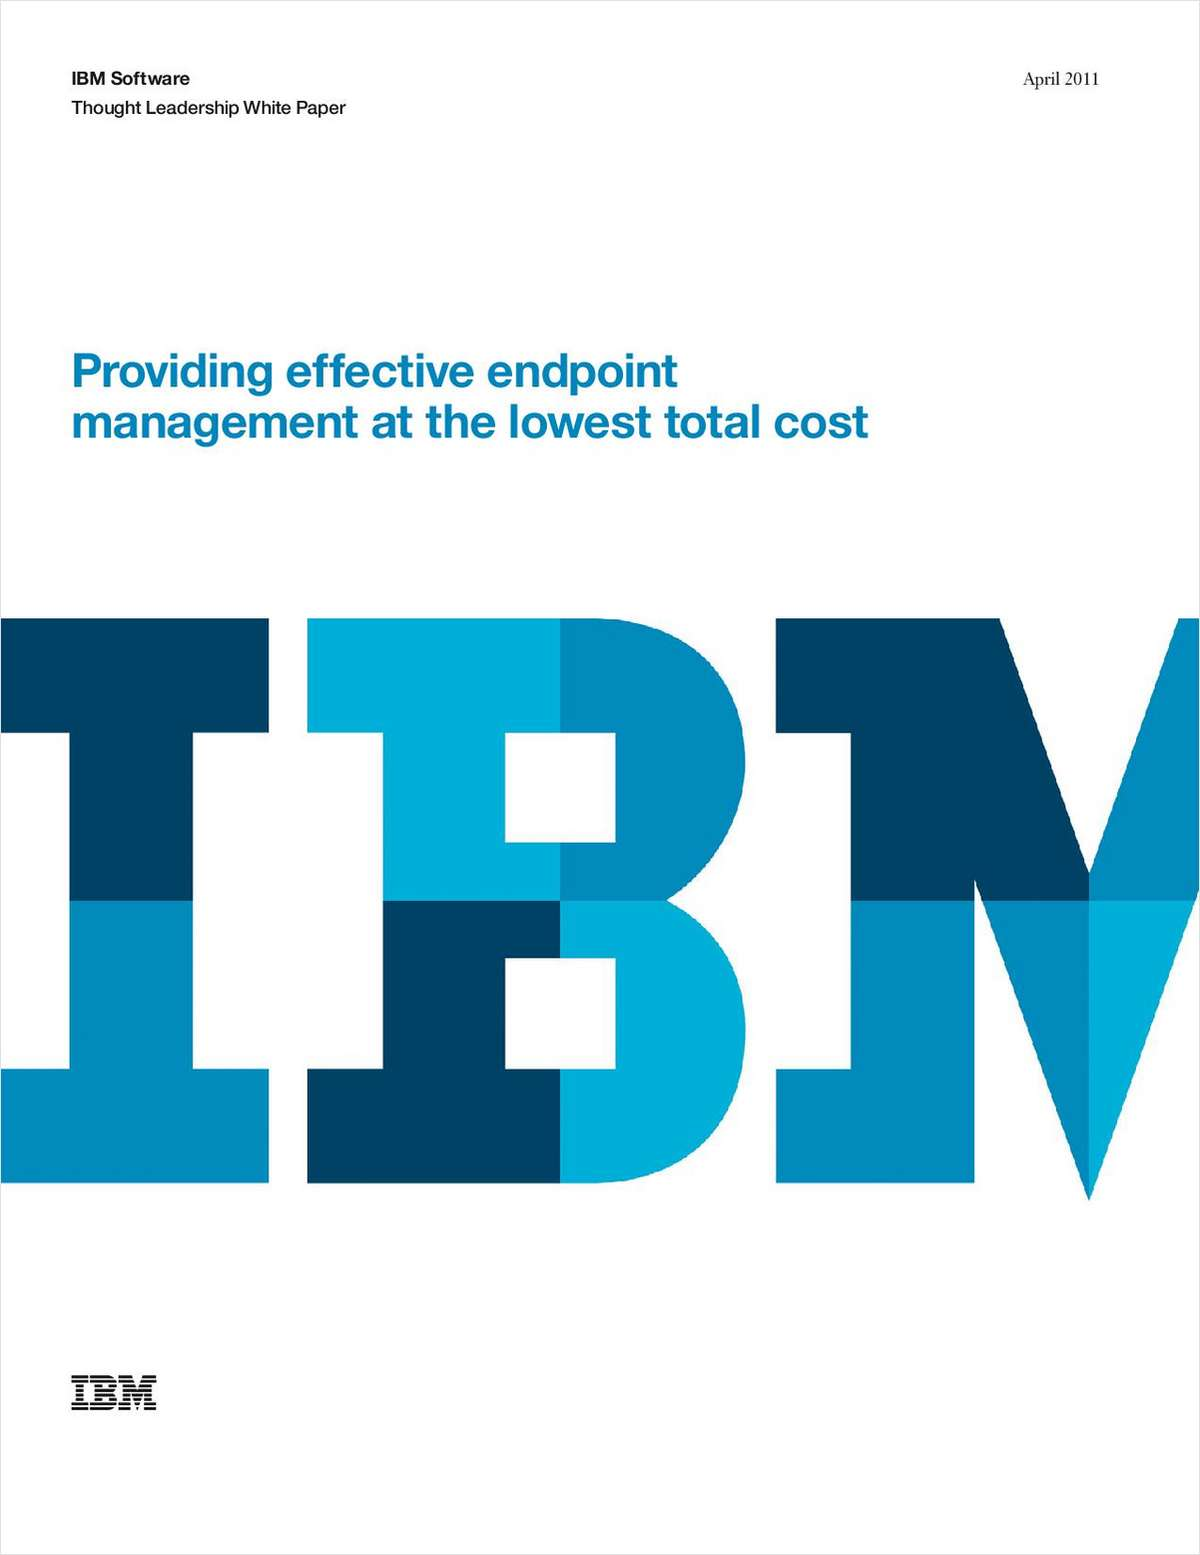 Providing Effective Endpoint Management at the Lowest Total Cost